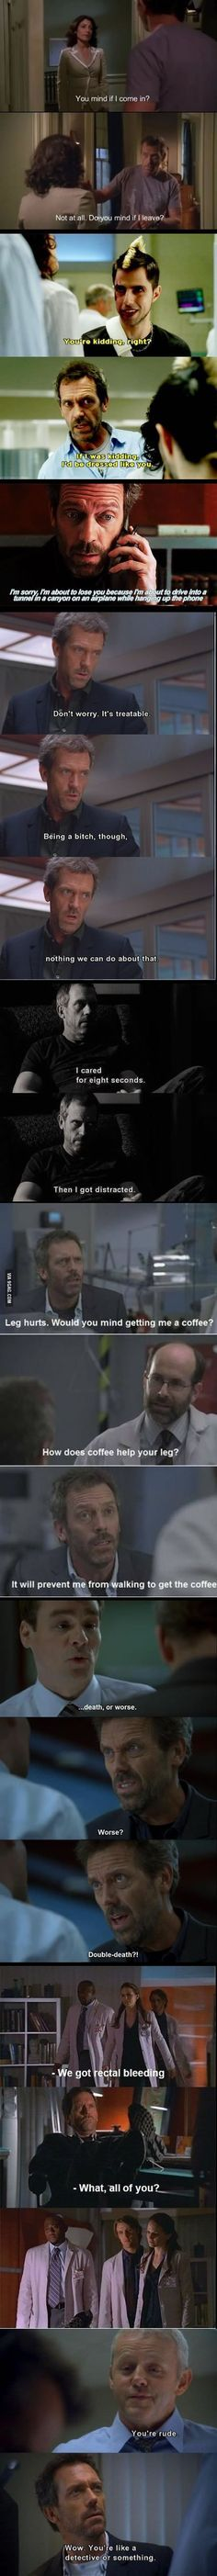 Never watched House. Apparently I need to because this made me laugh.